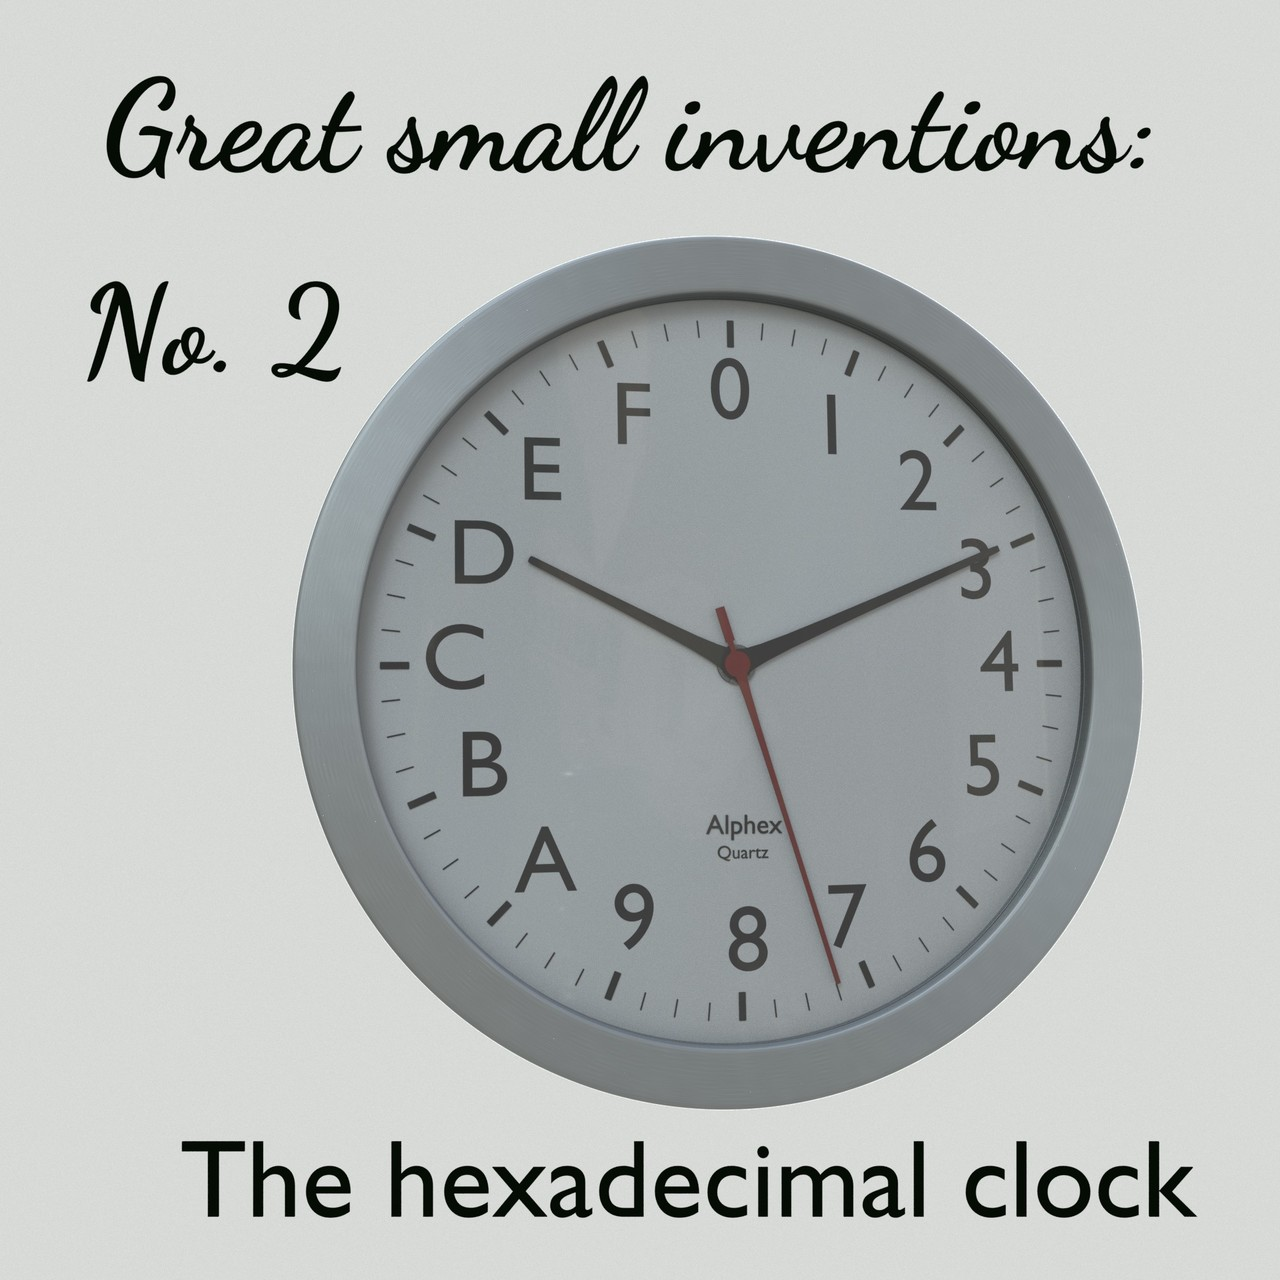 Great small inventions 2